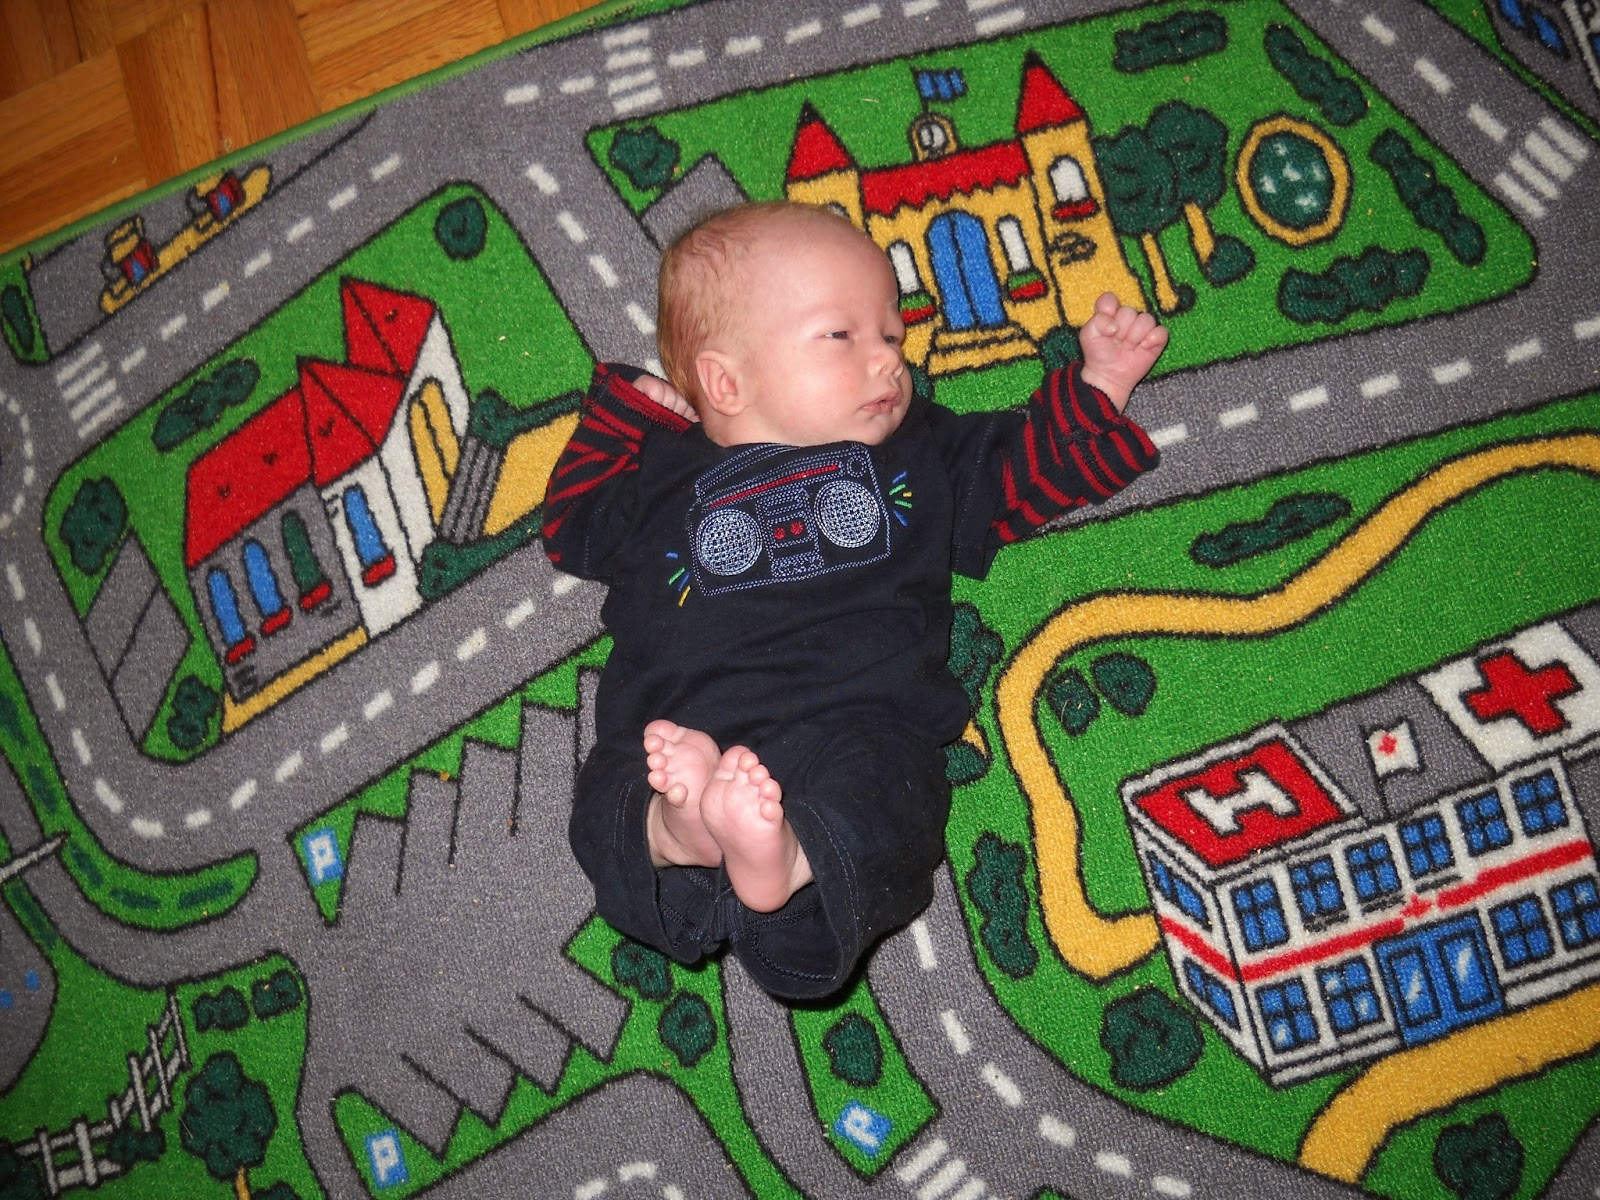 baby on city roads carpet